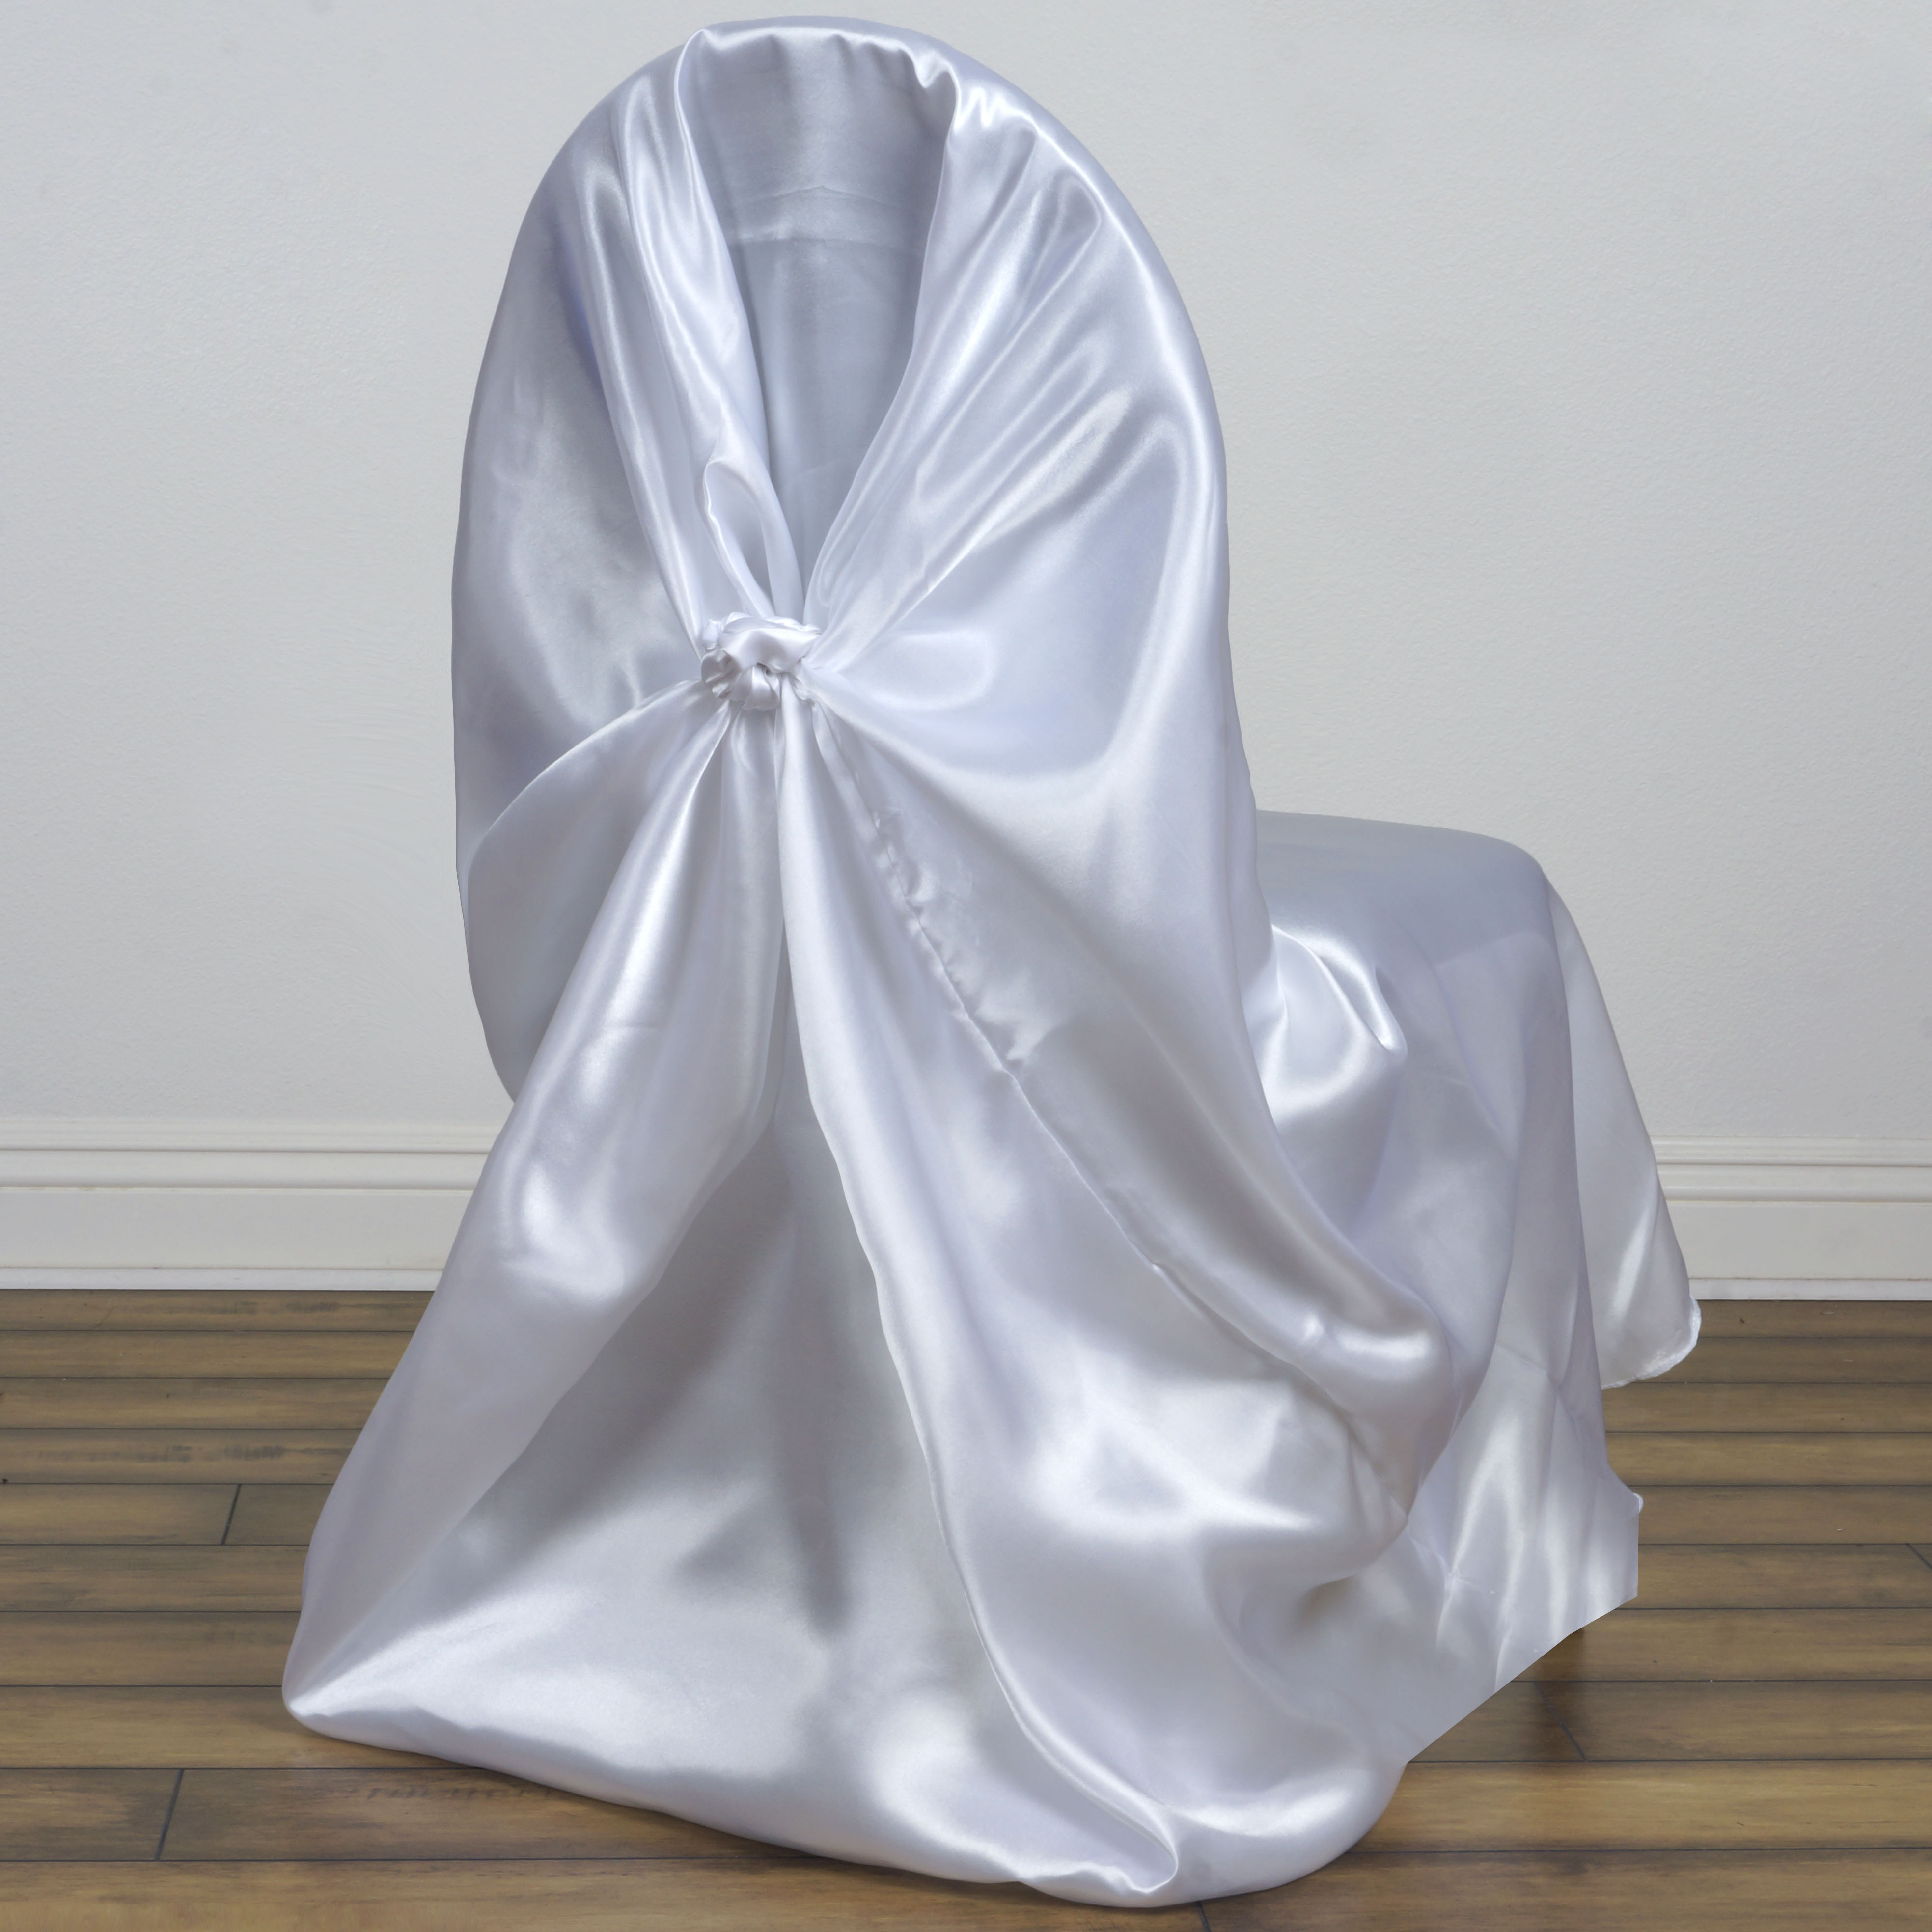 chair covers wedding manchester inada yume massage 50 universal self tie satin for any kind of